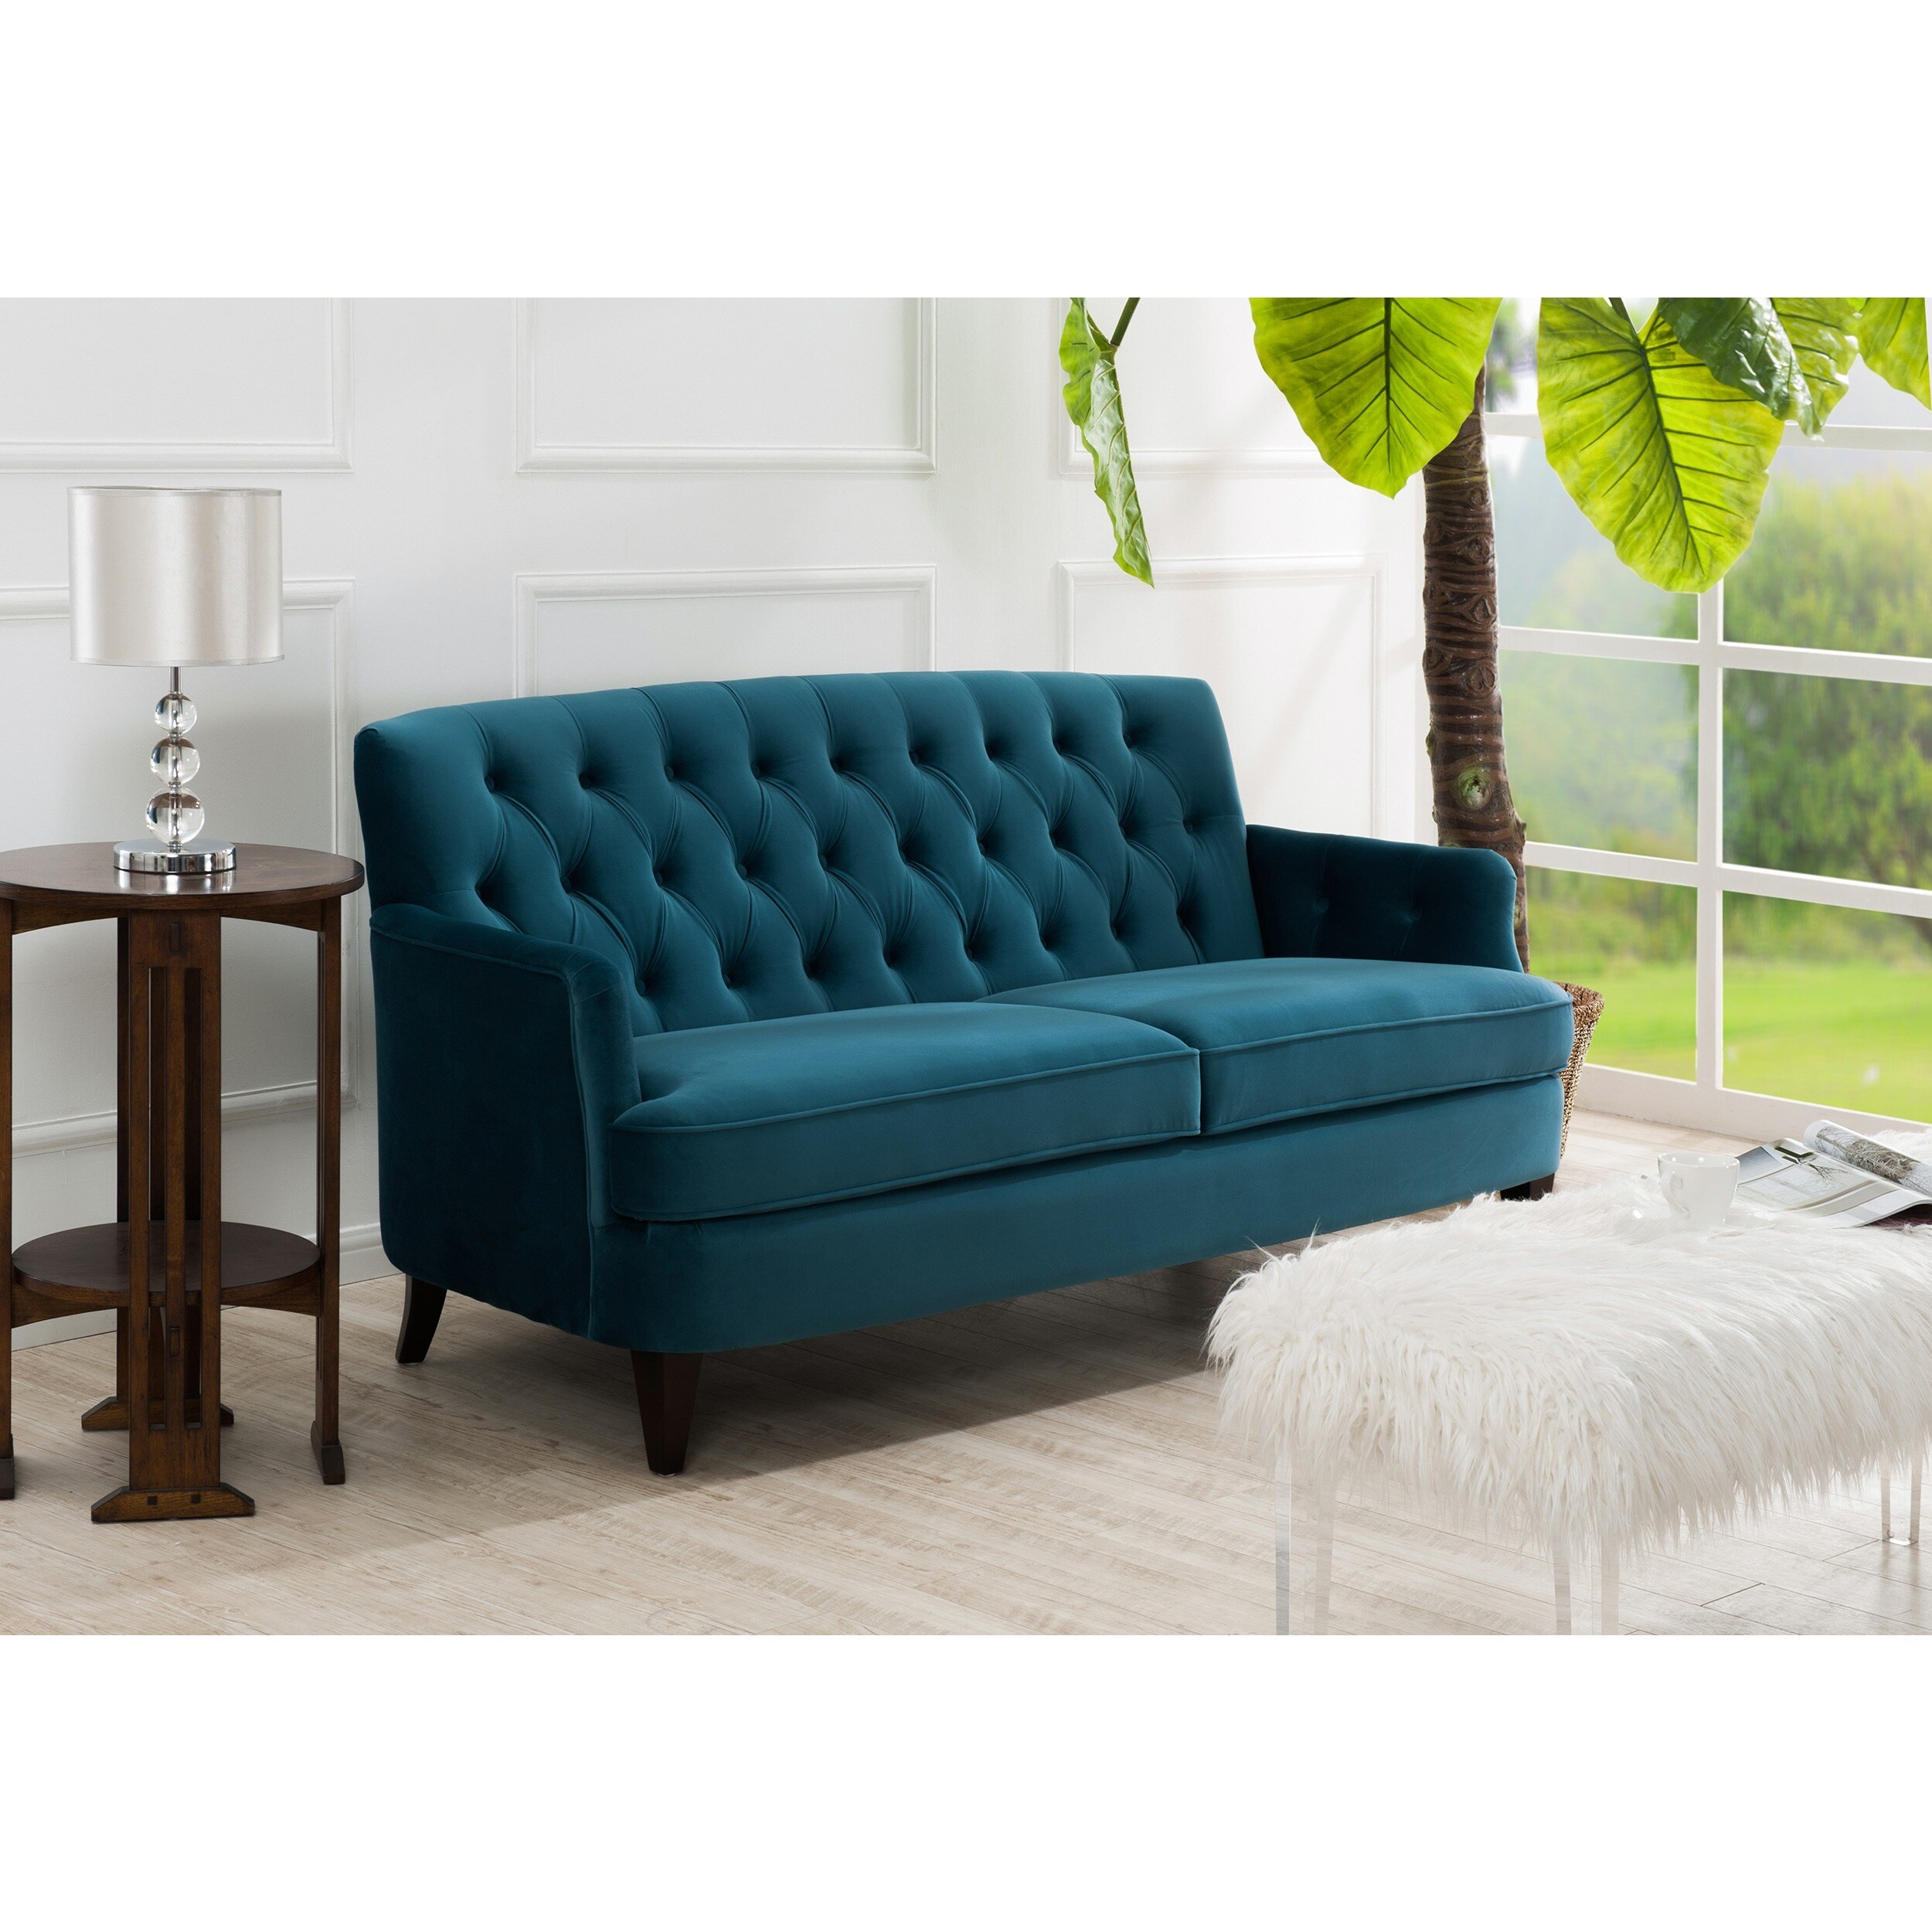 Shop Jennifer Taylor Kelly Tufted Sofa   On Sale   Free Shipping Today    Overstock.com   12635951